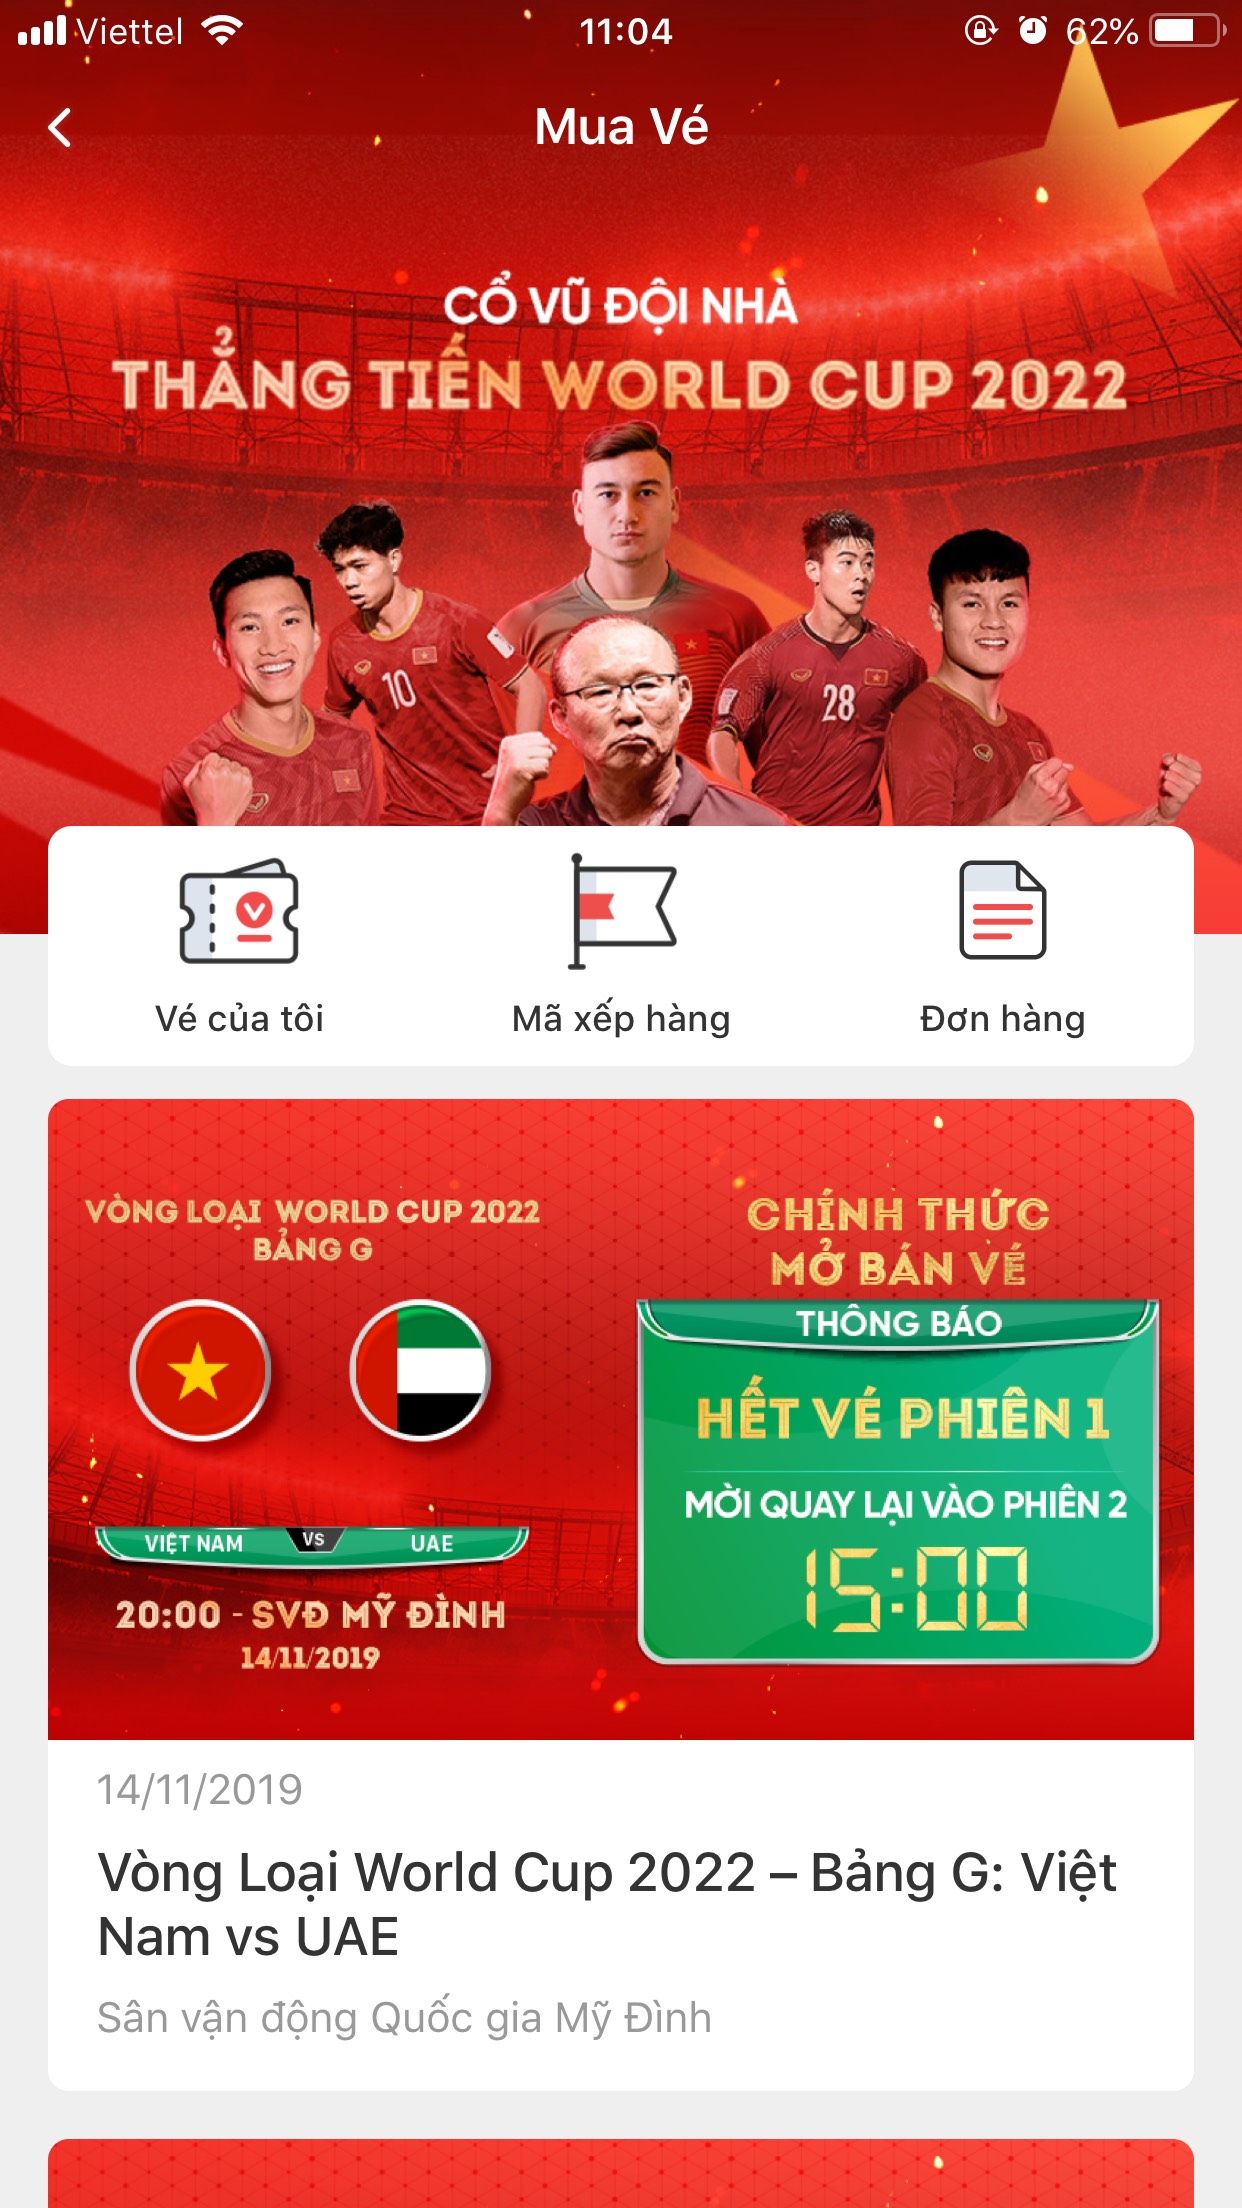 dt viet nam gay sot o vong loai world cup, ve tran dau voi uae het trong 2 phut hinh anh 2